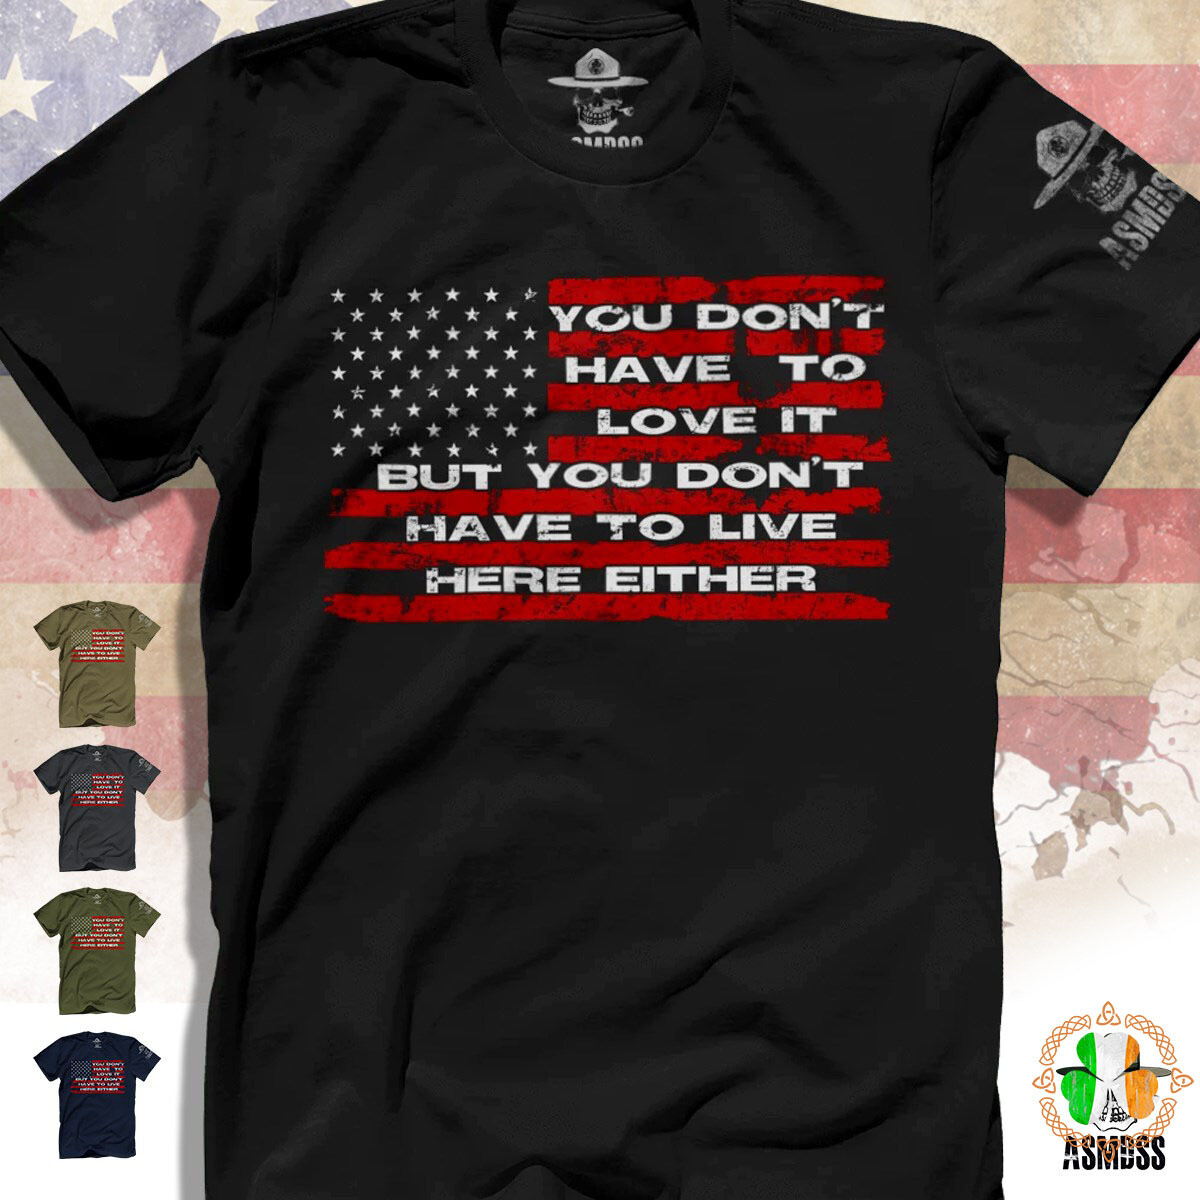 You Don't Have To Love It But You Don't Have To Live Here Either shirt